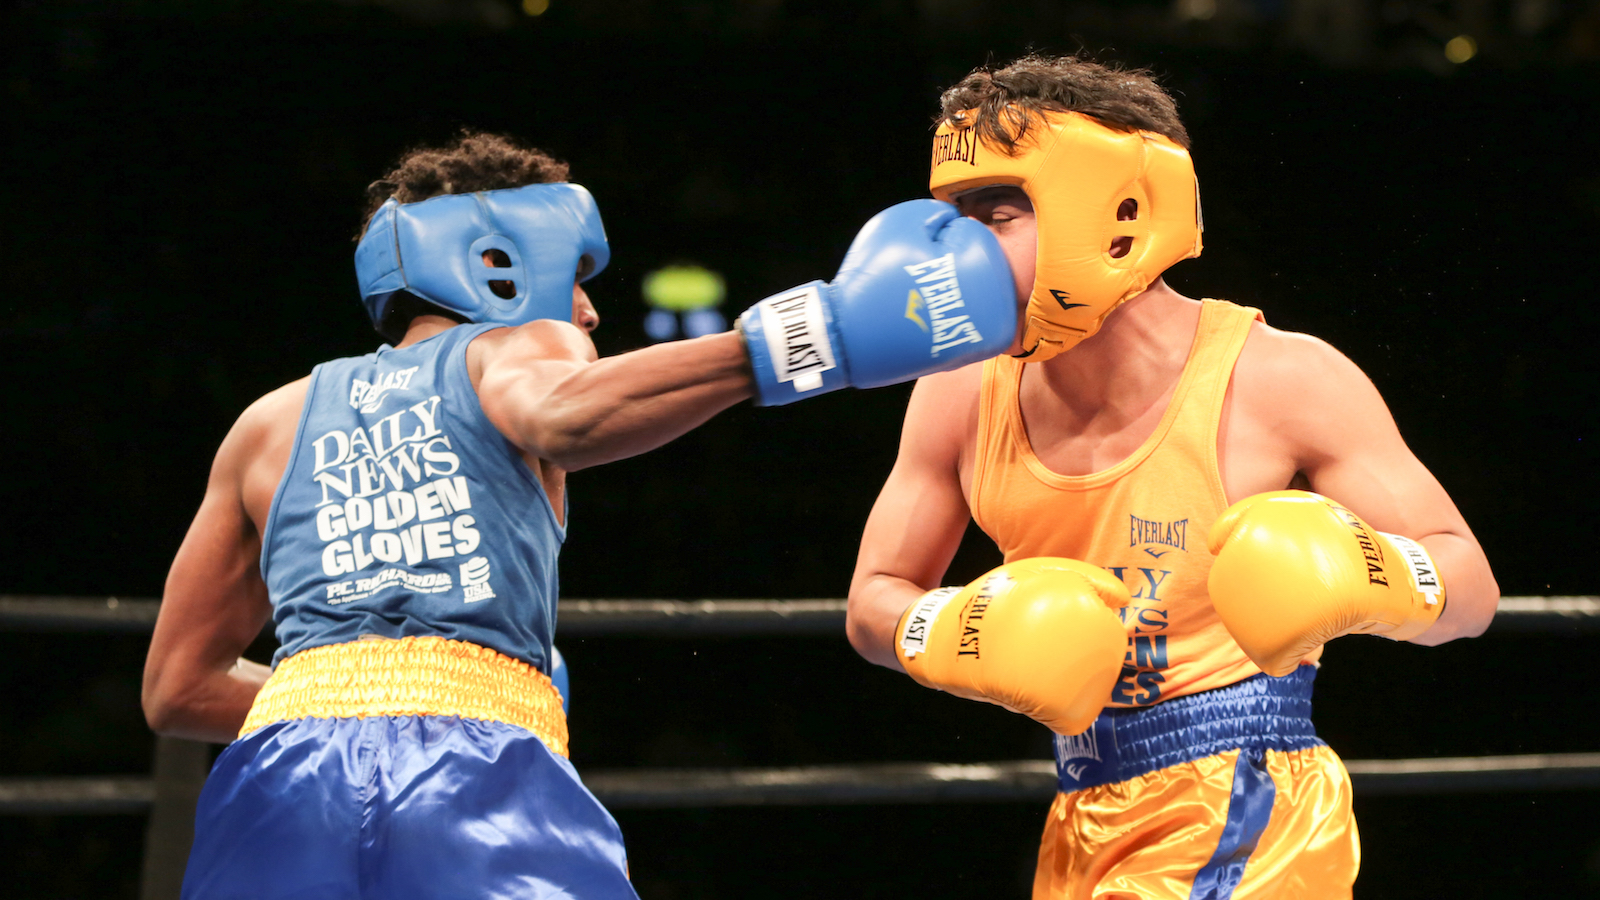 Brandon Browne, left, fights against Christopher Cuellar at the 89th Annual Golden Gloves boxing tournament finals, on Monday, April 18, 2016, in New York. Brandon Browne won via technical knockout in the first round. (AP Photo/Steve Luciano)